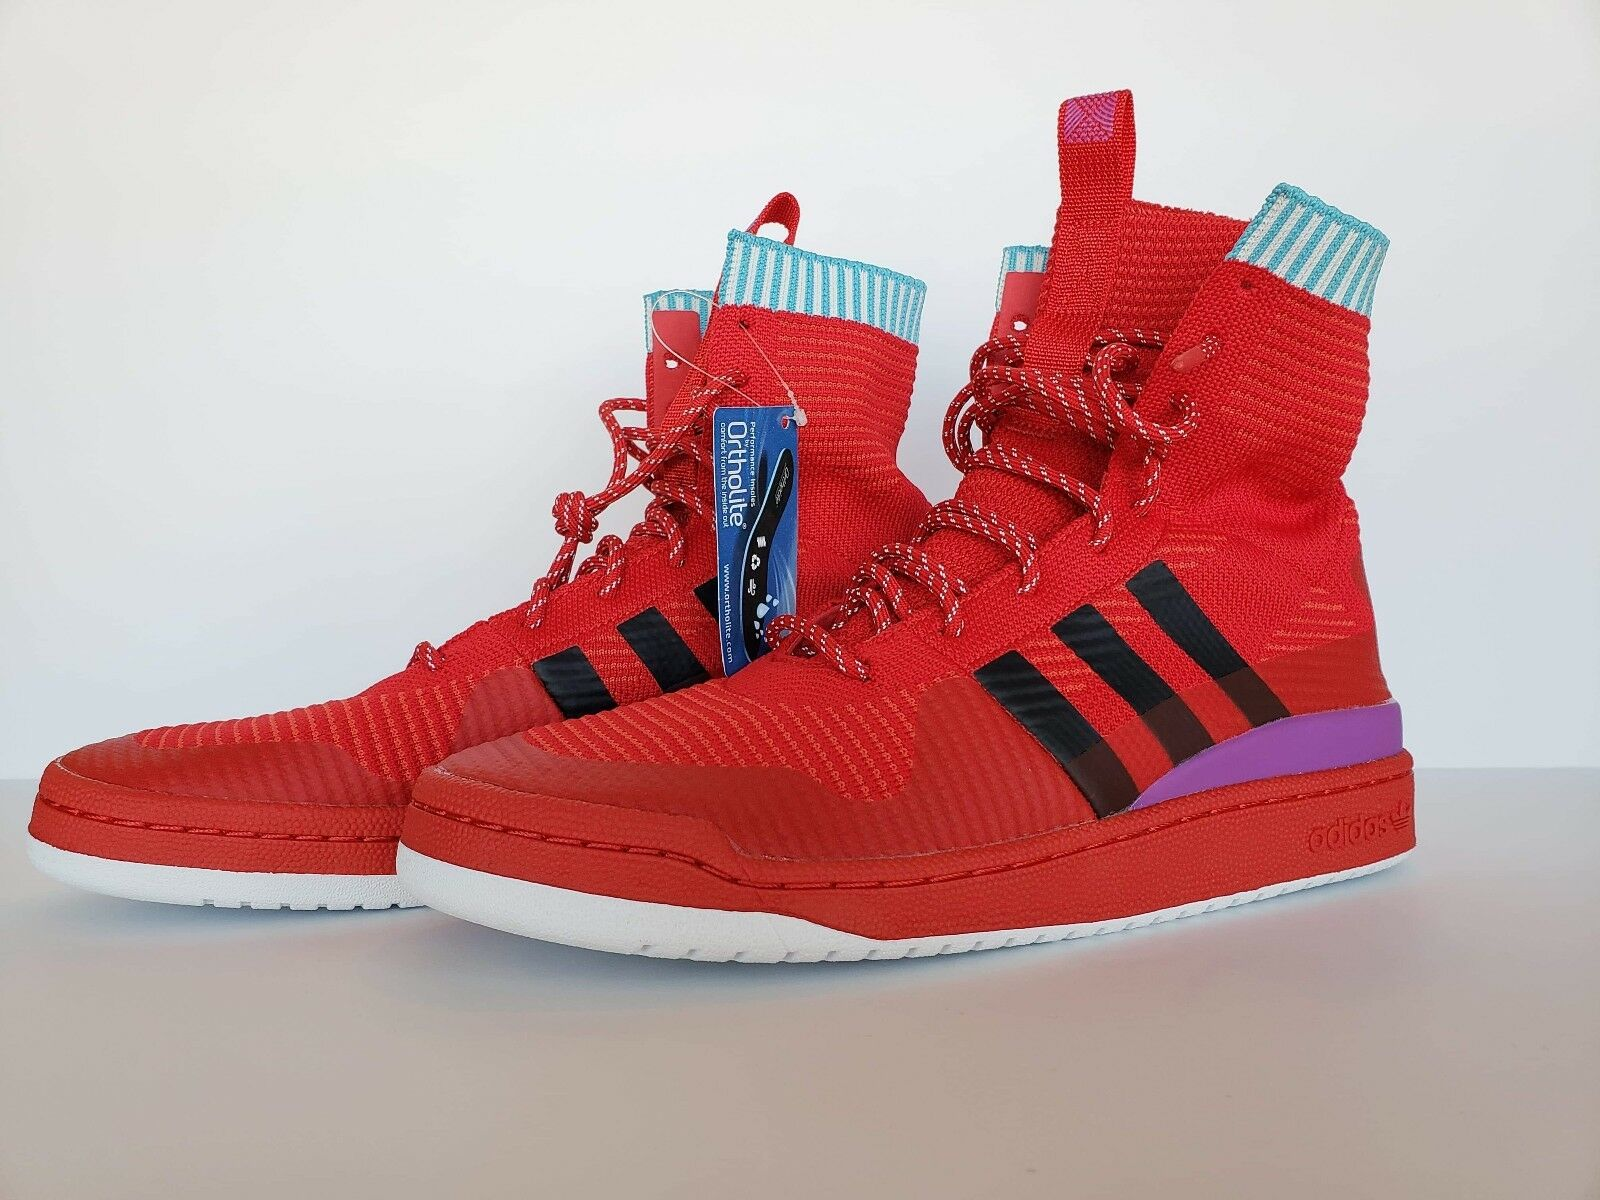 Adidas FORUM WINTER Prime knit Basketball shoes- Red- Mens size 11 BZ0645